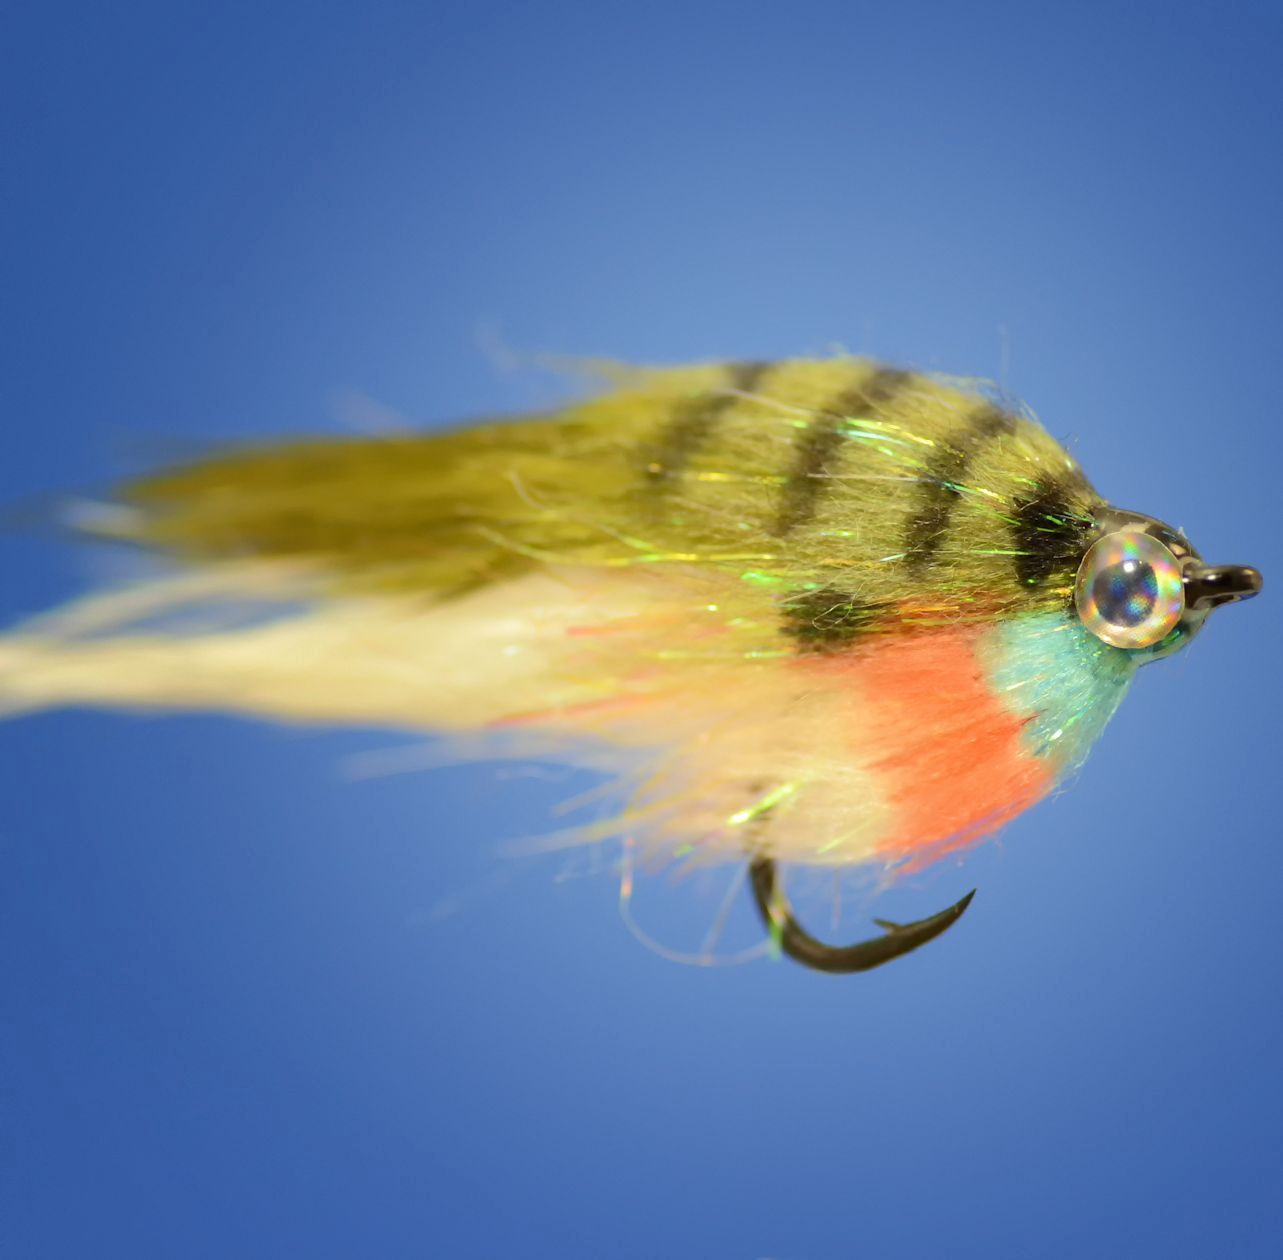 Cheech 39 s low fat minnow fly fish food fly tying and for Fly fish food